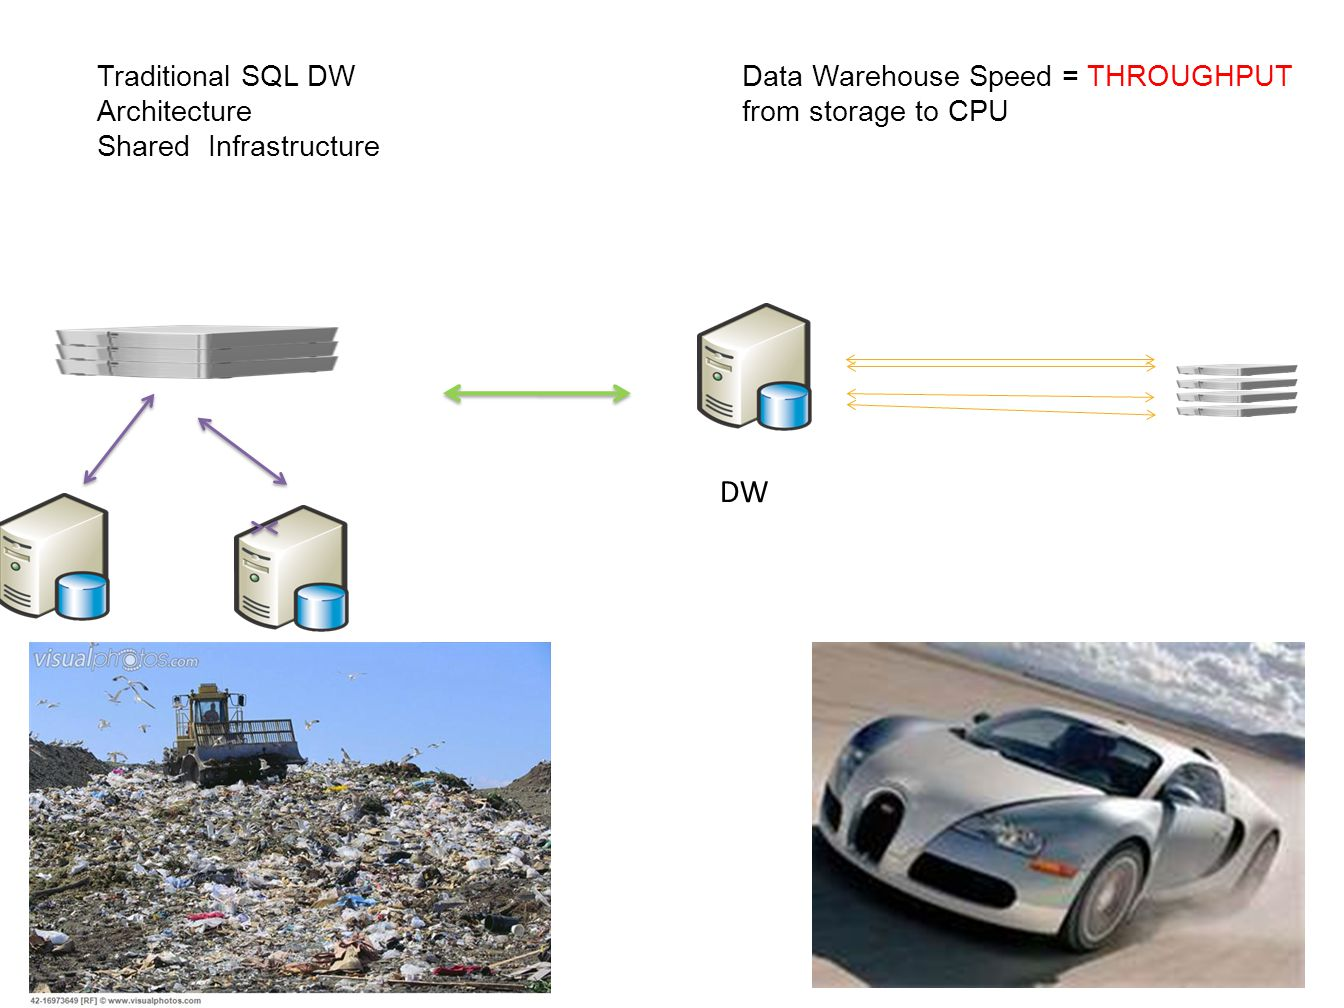 Enterprise Shared SAN Storage Dedicated Network Bandwidth Traditional SQL DW Architecture Shared Infrastructure Data Warehouse Speed = THROUGHPUT from